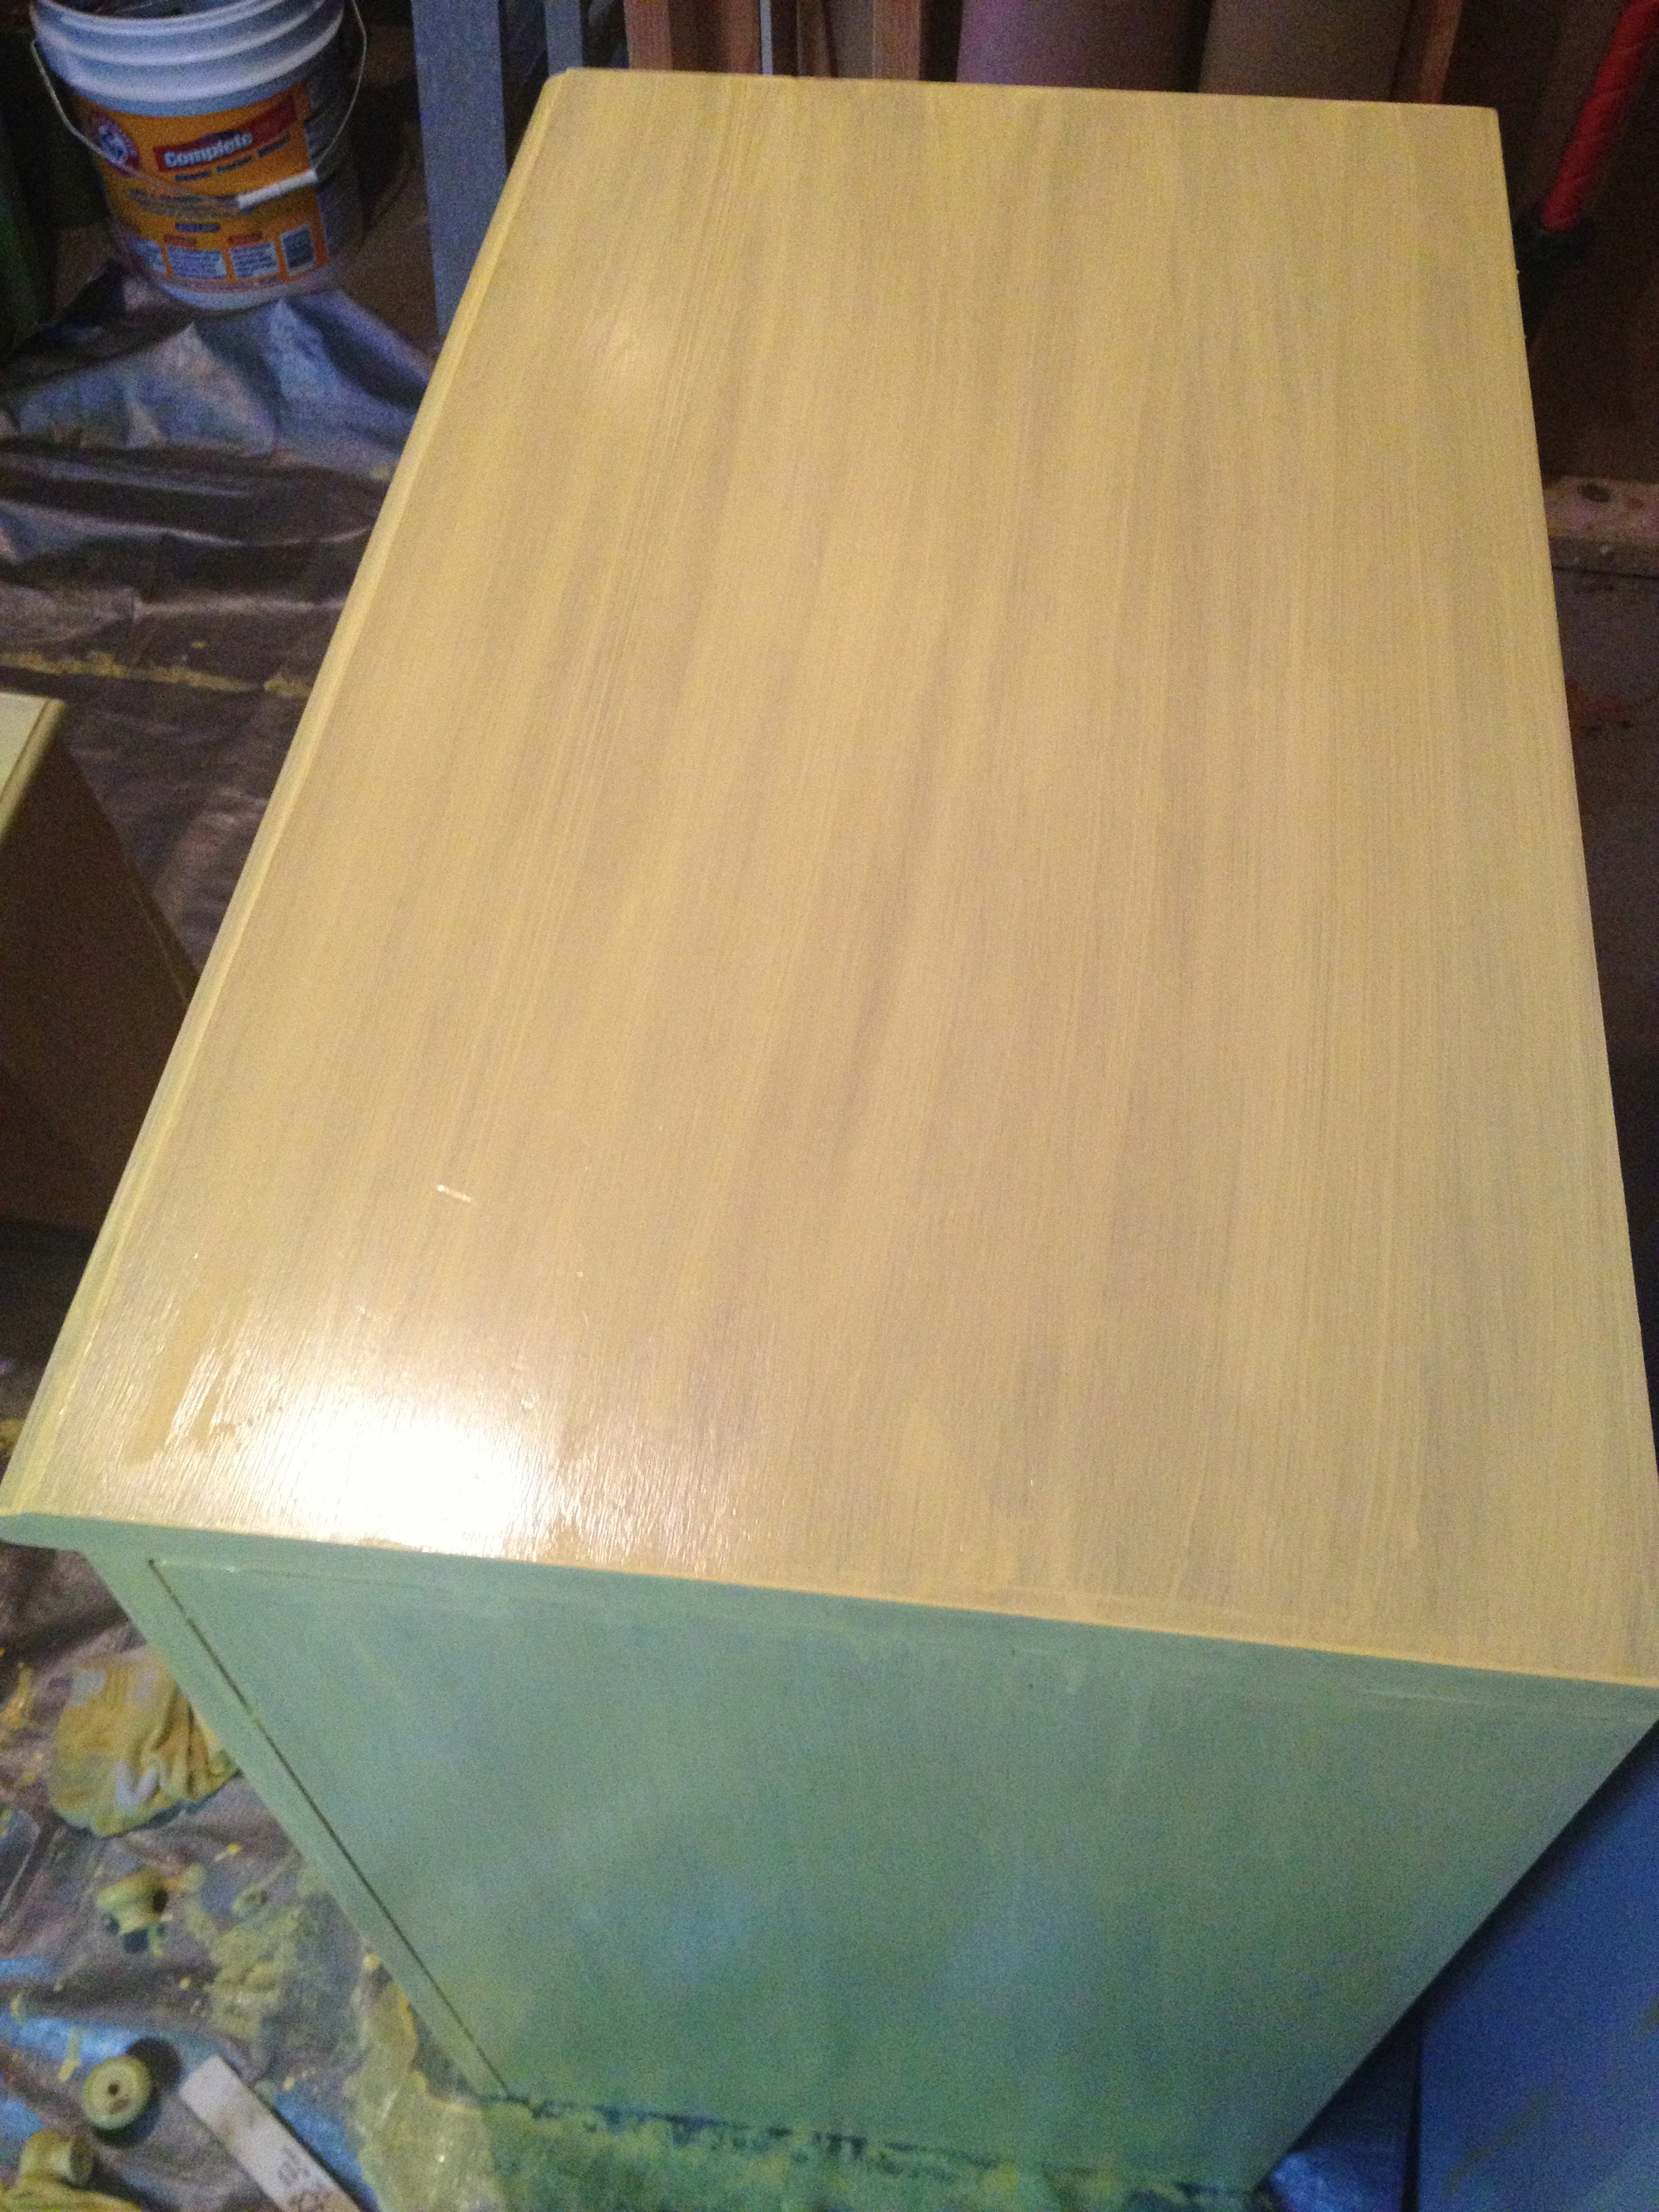 After two coats